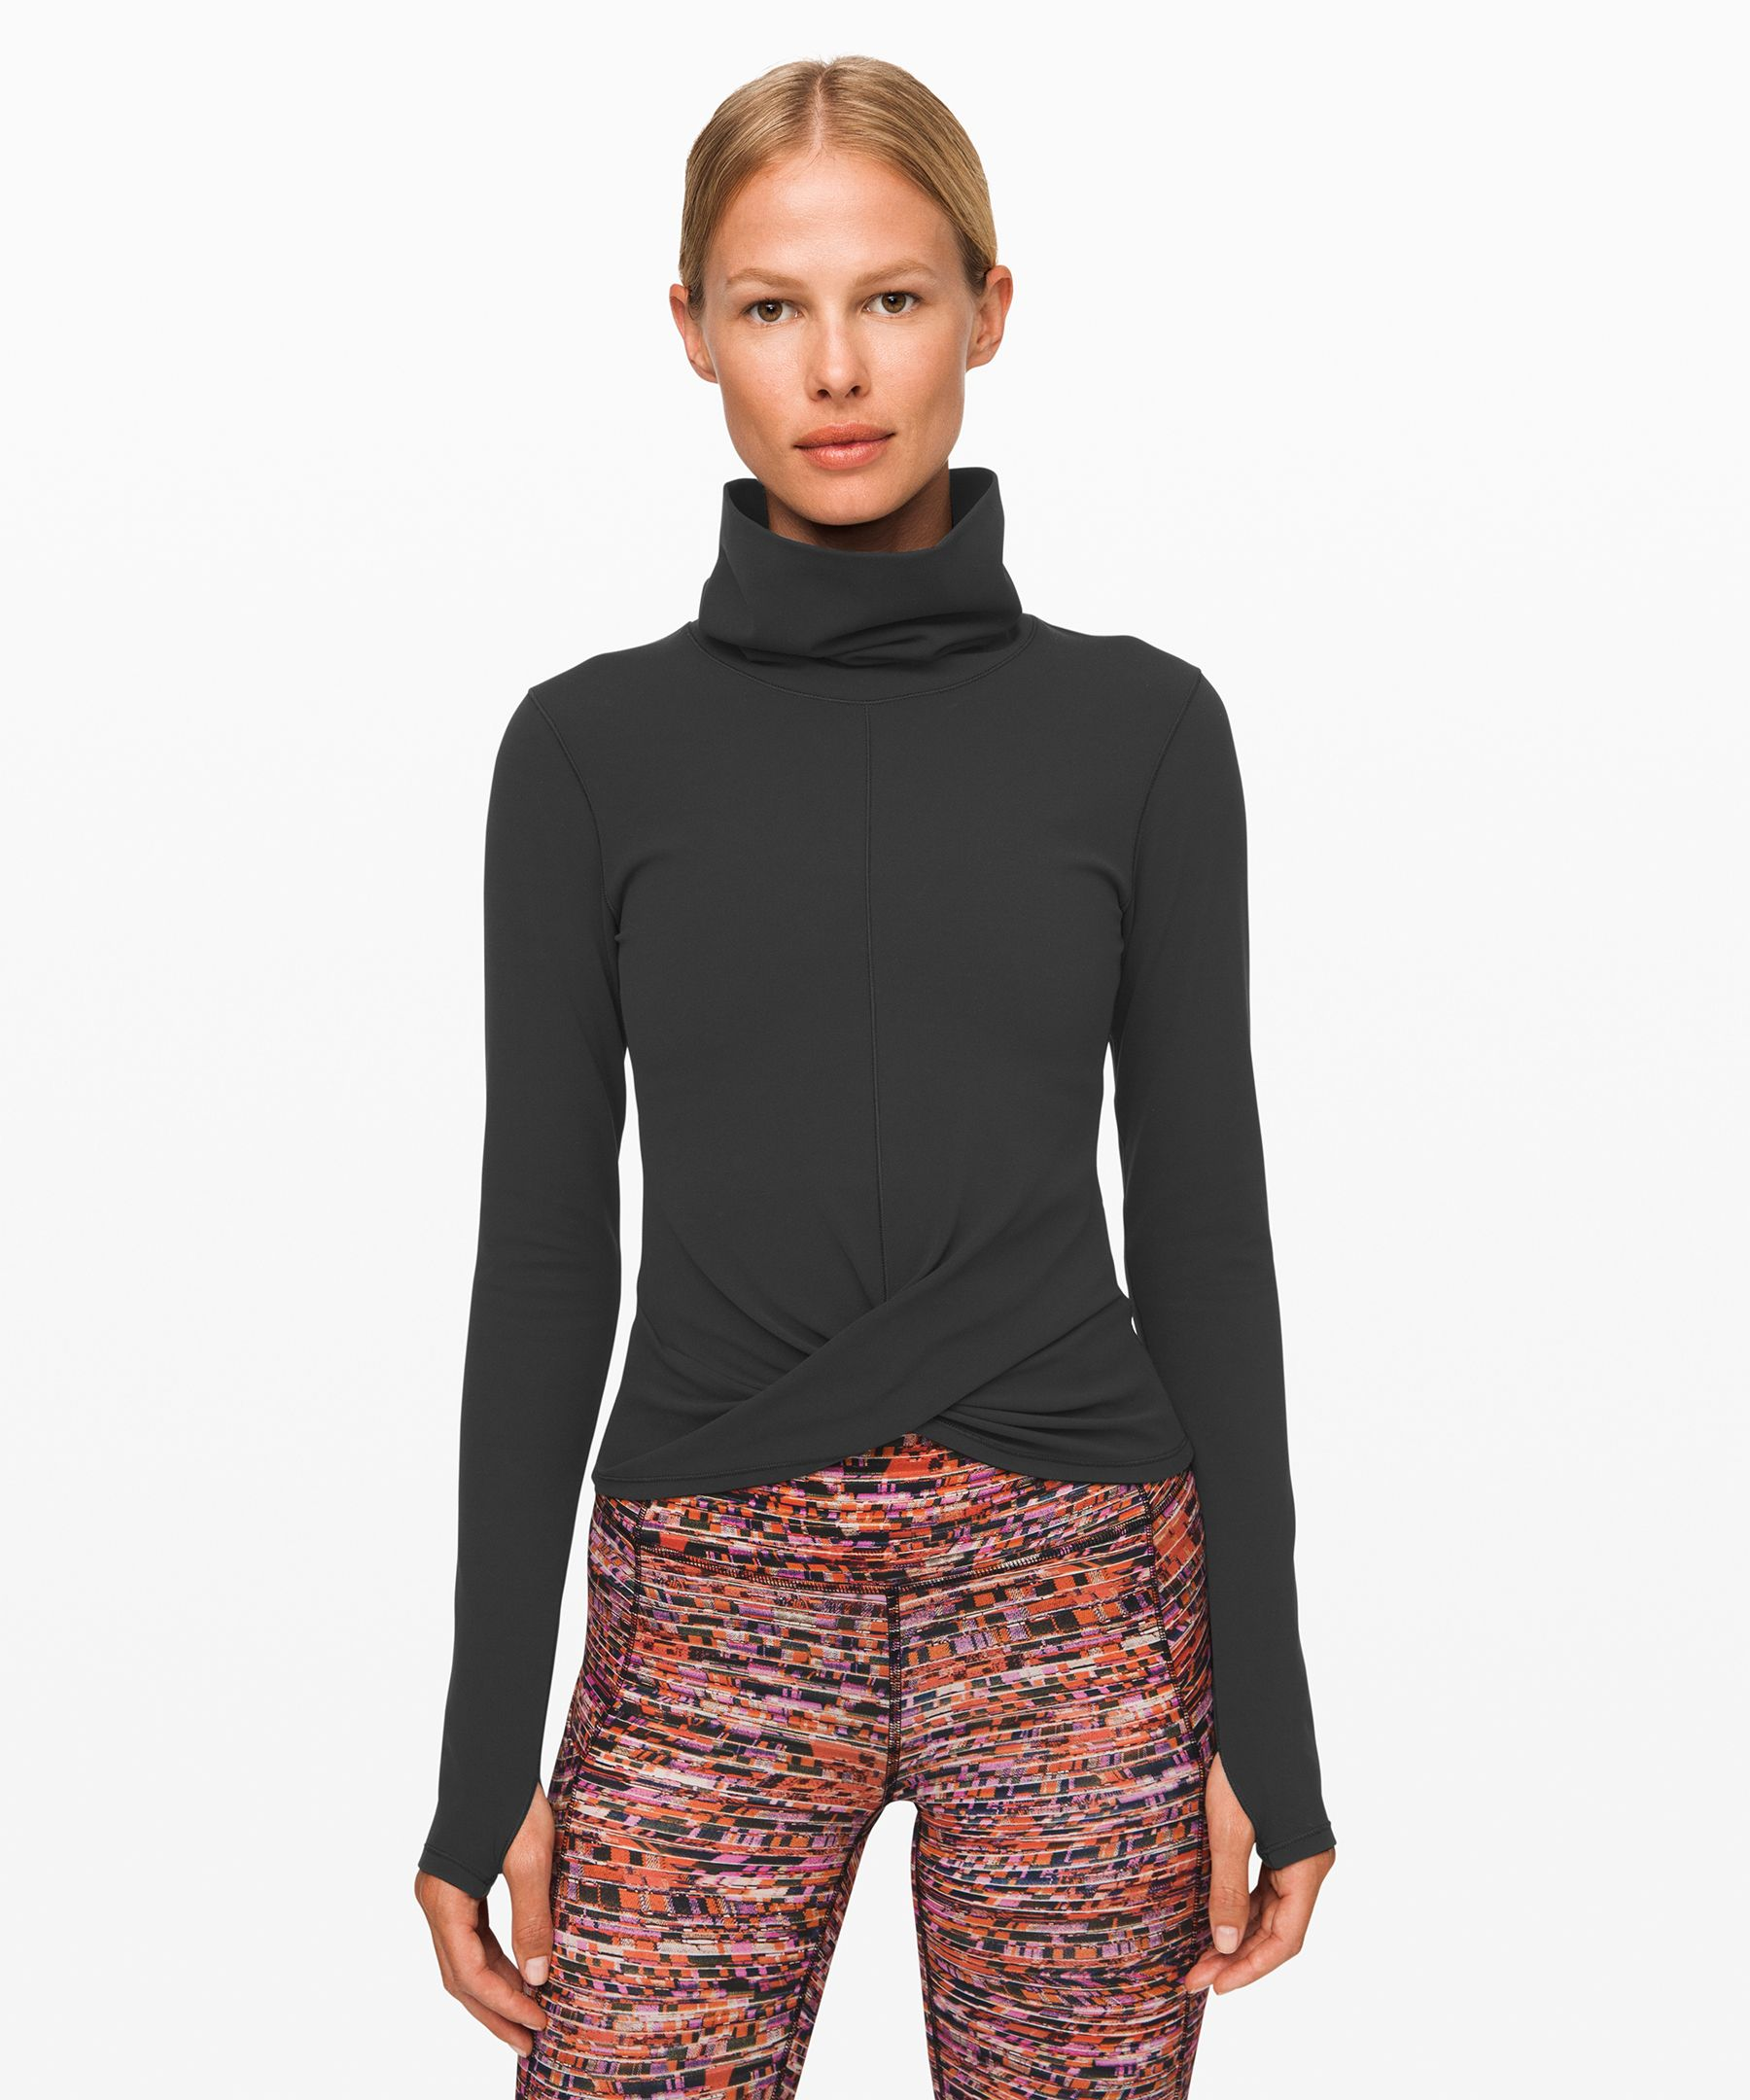 Melodic Movement Turtleneck Long Sleeve by Lululemon